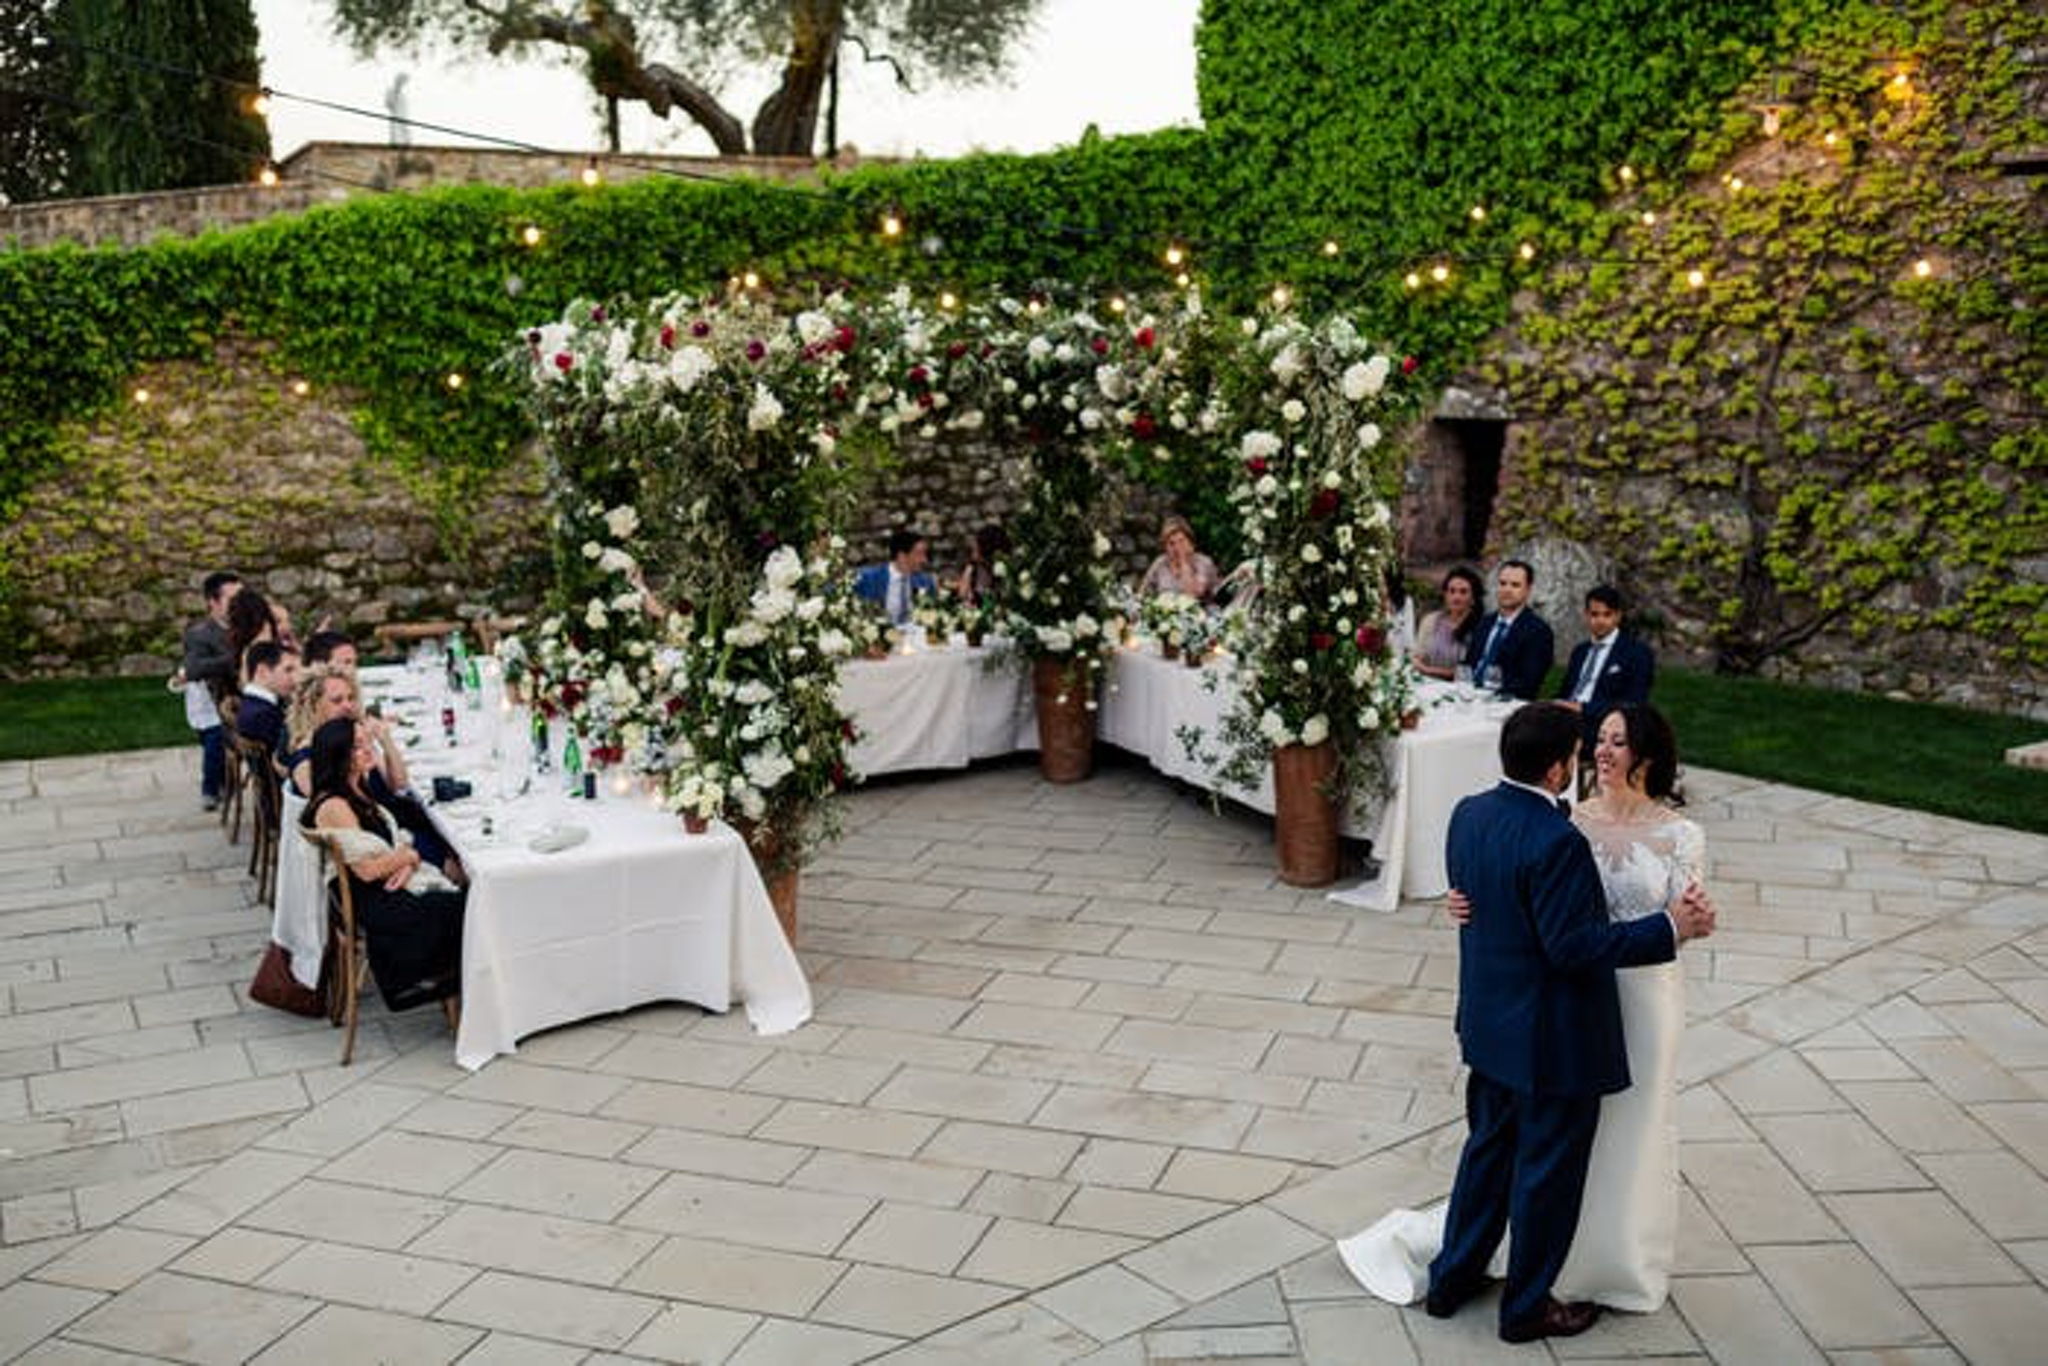 Outside wedding with lots of greenery and long white tables